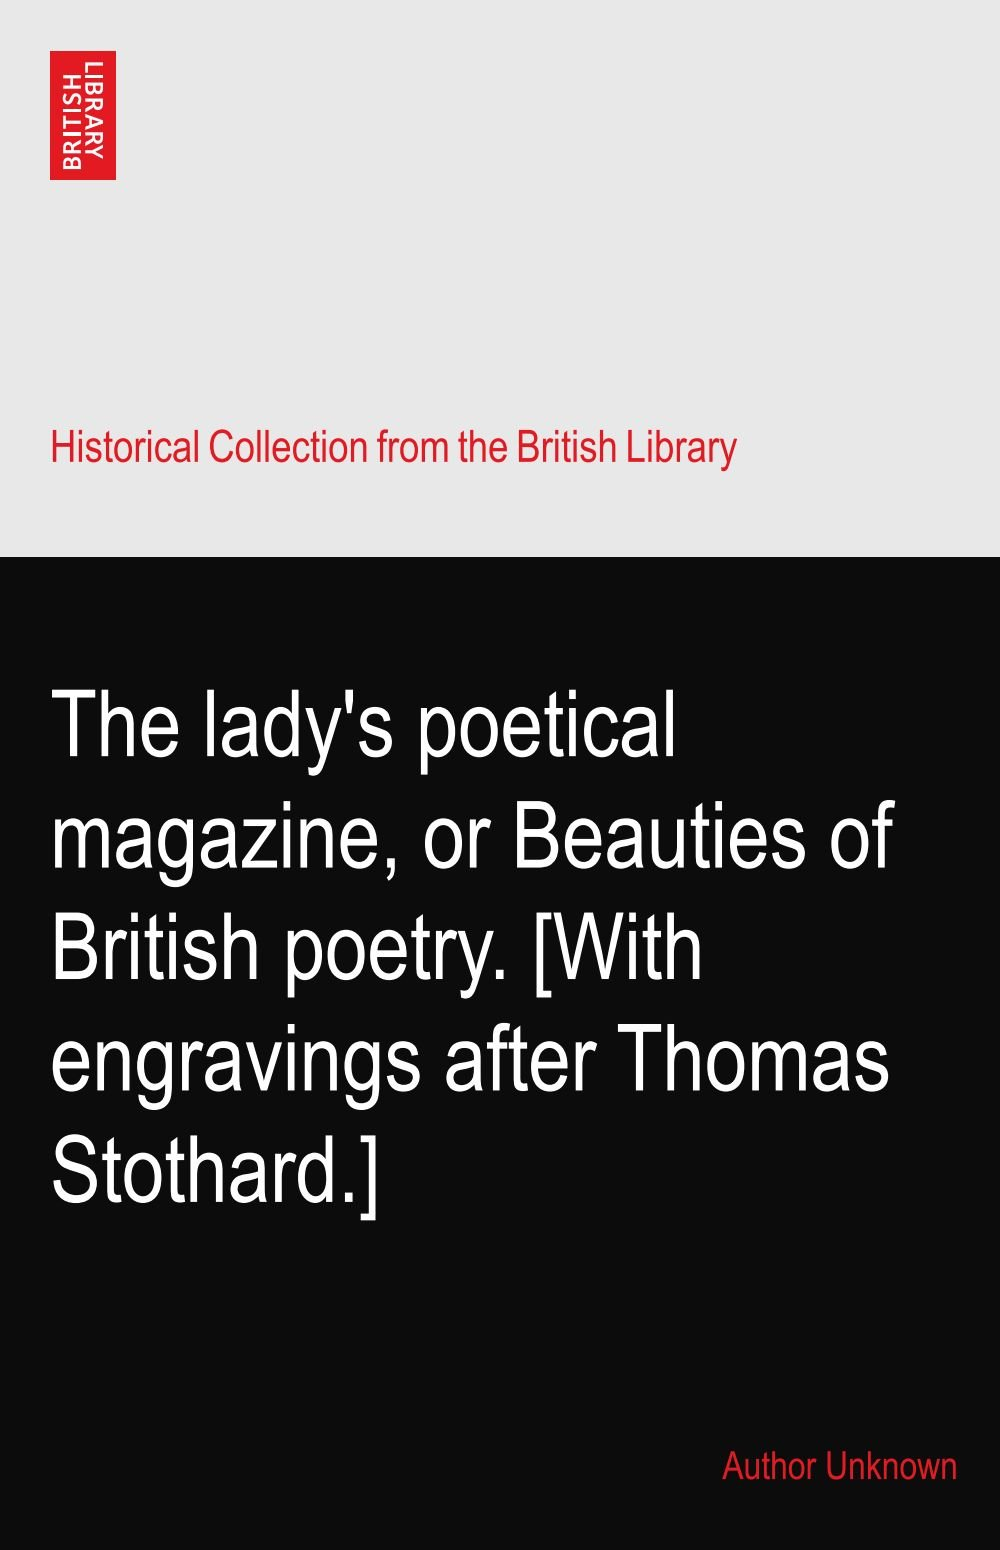 The lady's poetical magazine, or Beauties of British poetry. [With engravings after Thomas Stothard.] PDF